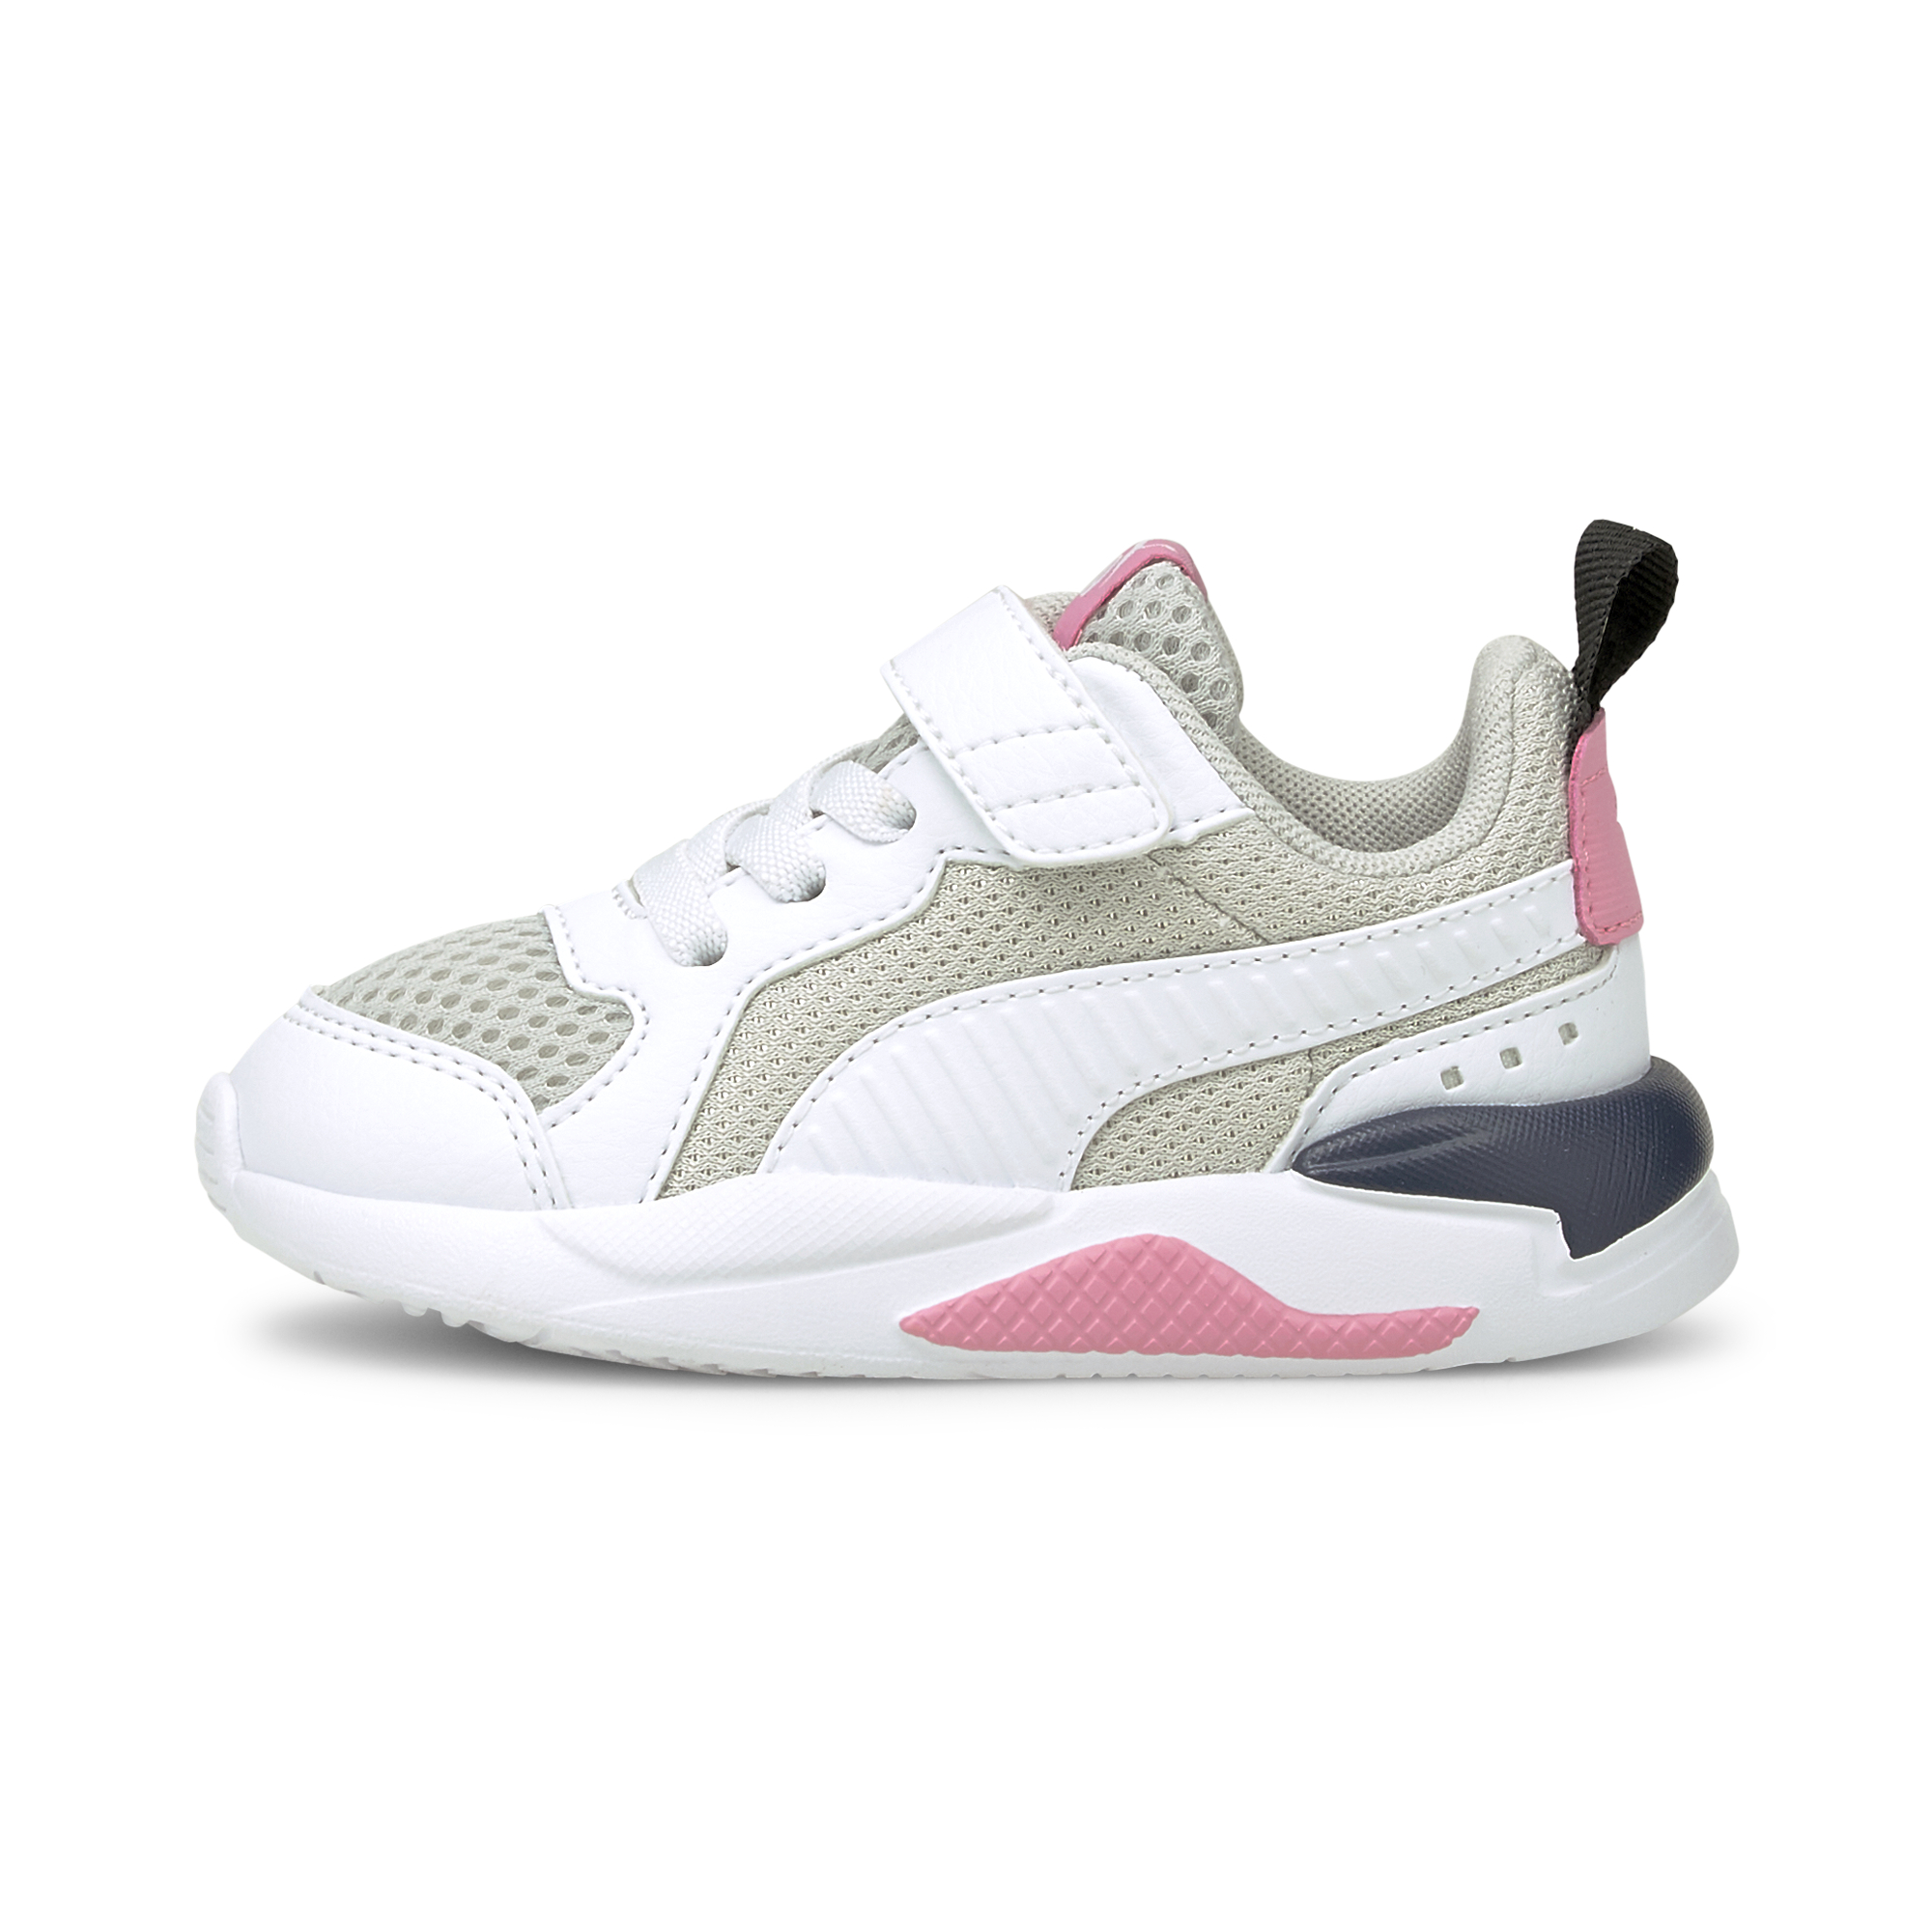 Puma X-Ray AC Inf sneakers